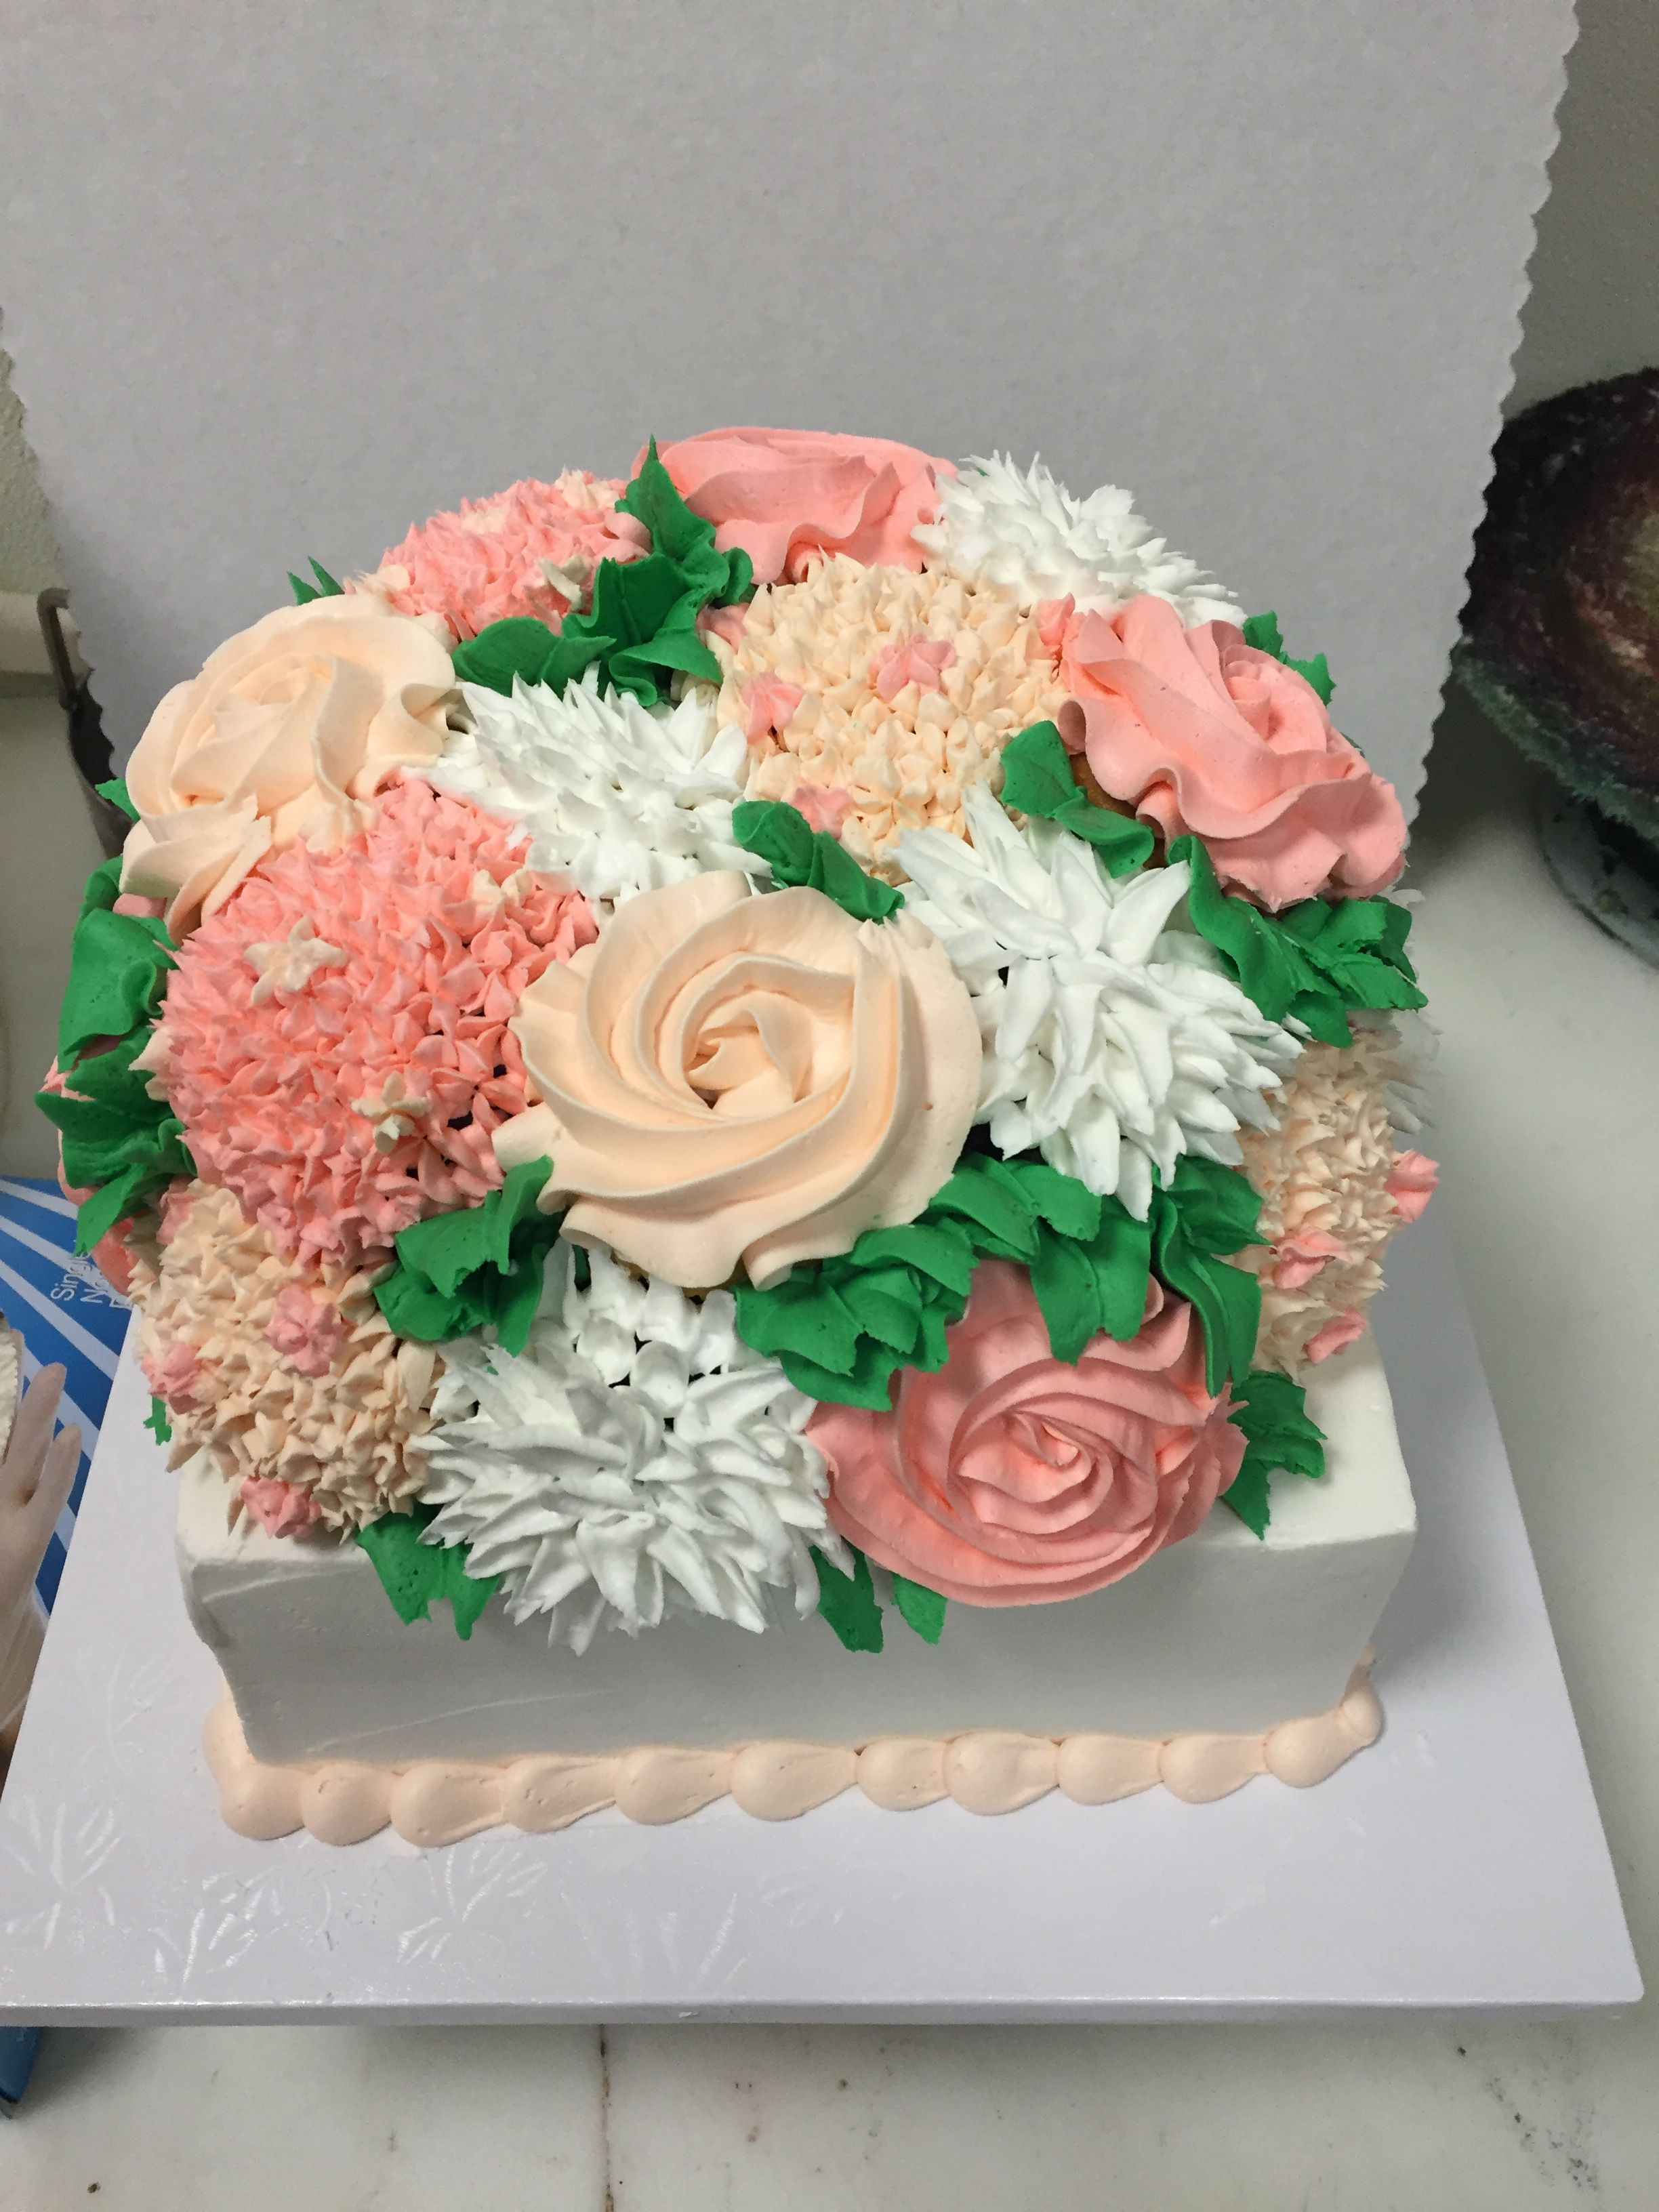 Flower Bouquet Cake My Cakes Pinterest Flower Bouquets And Cake